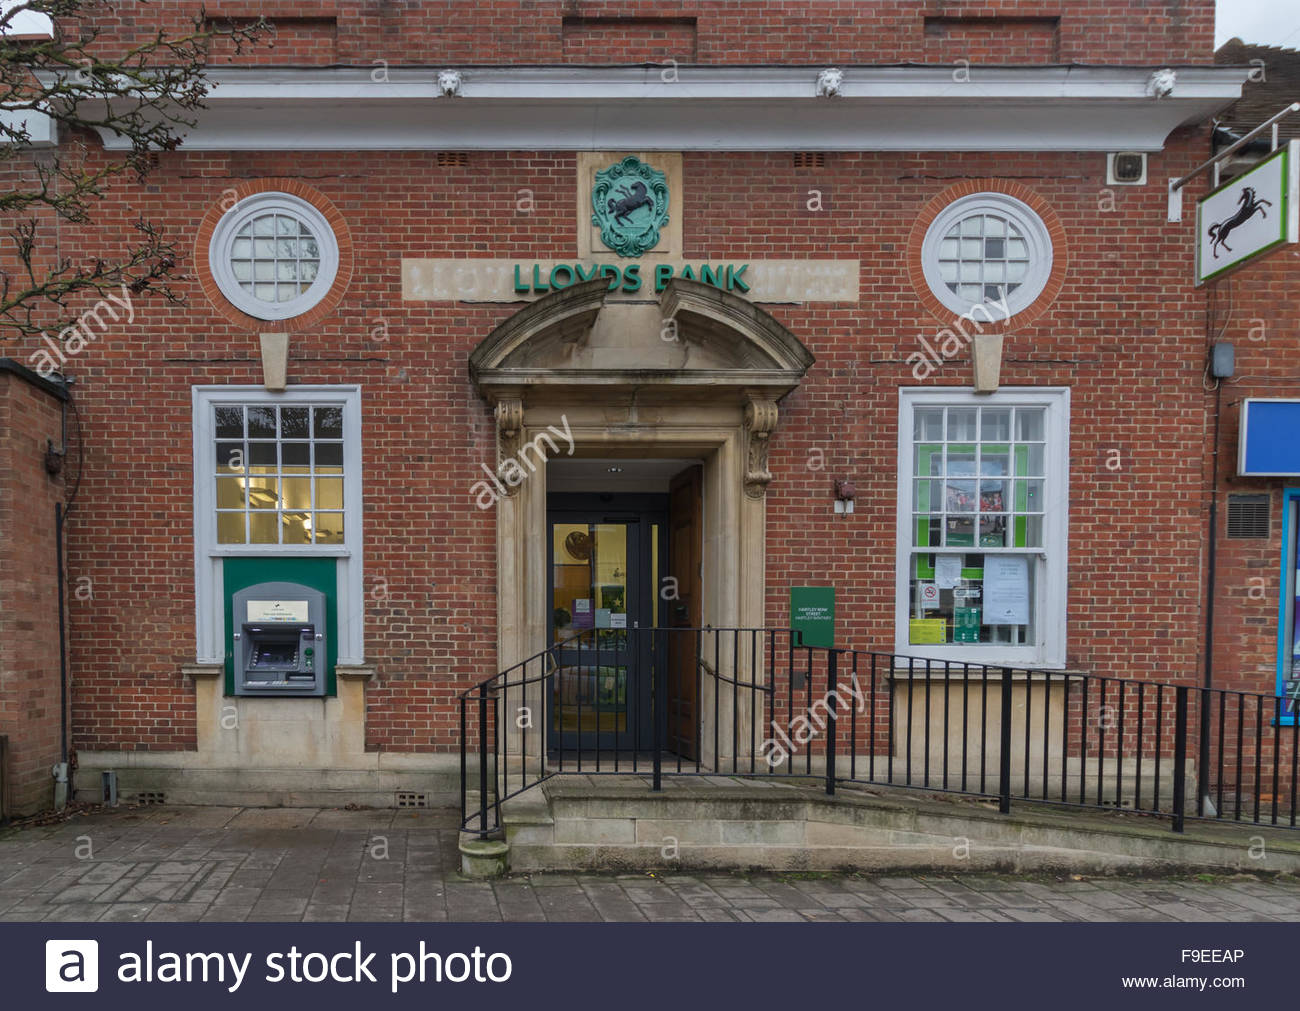 Lloyds Bank branch in the village of Hartley Wintney, Hampshire. The last bank in the village, it will close in - Stock Image